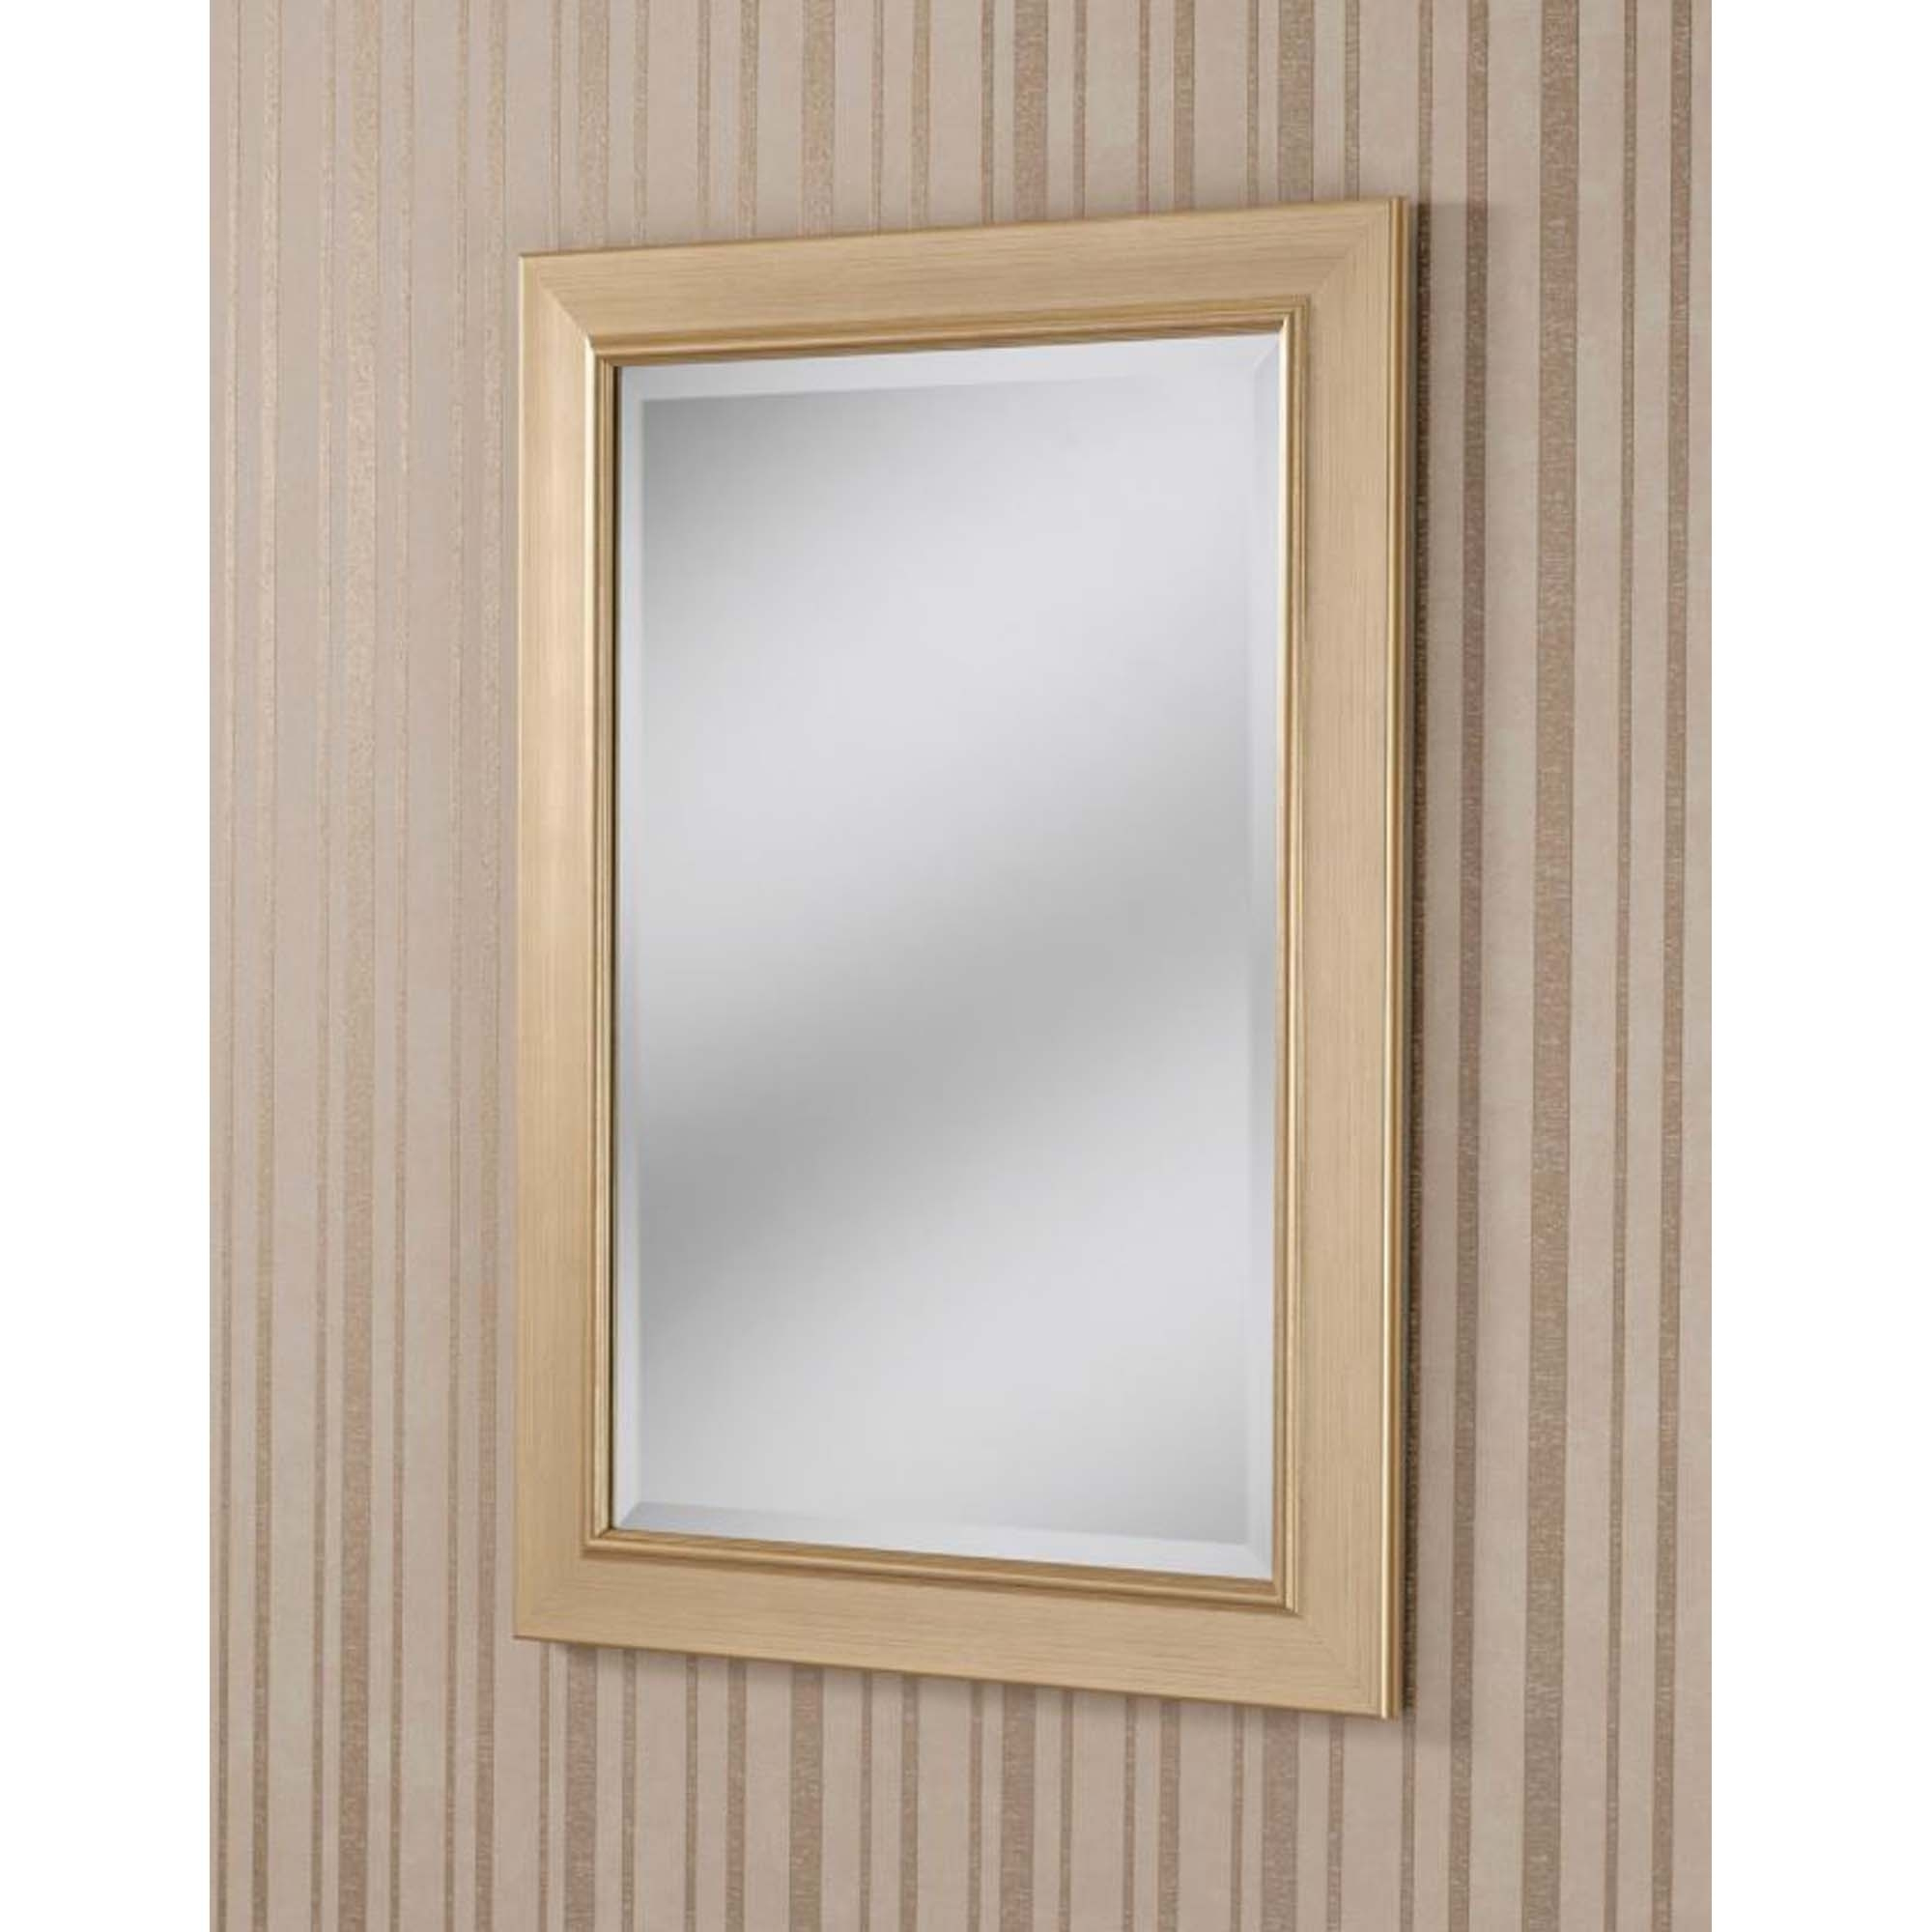 Current Decorative Gold Framed Rectangular Wall Mirror Pertaining To Decorative Framed Wall Mirrors (View 16 of 20)